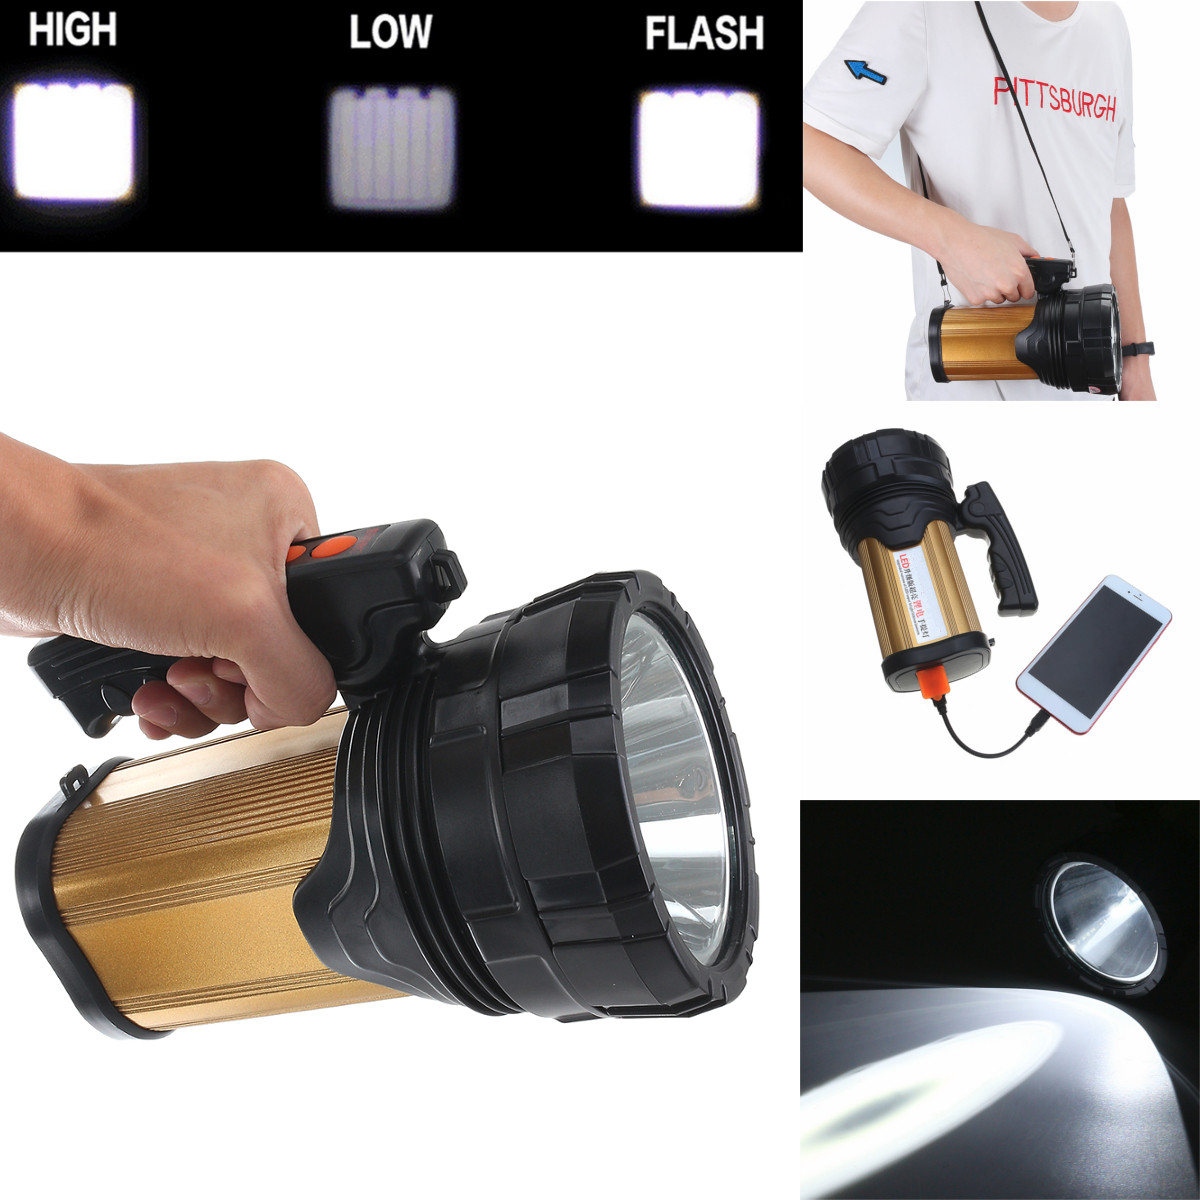 LED Rechargeable Flashlight USB Searchlight Super Bright Searchlight Outdoor Handheld Portable Spotlight Long Shots Lamp 120W ford cup viscosity cup viscosity measurement cup paint viscosity cup 3 4 optional